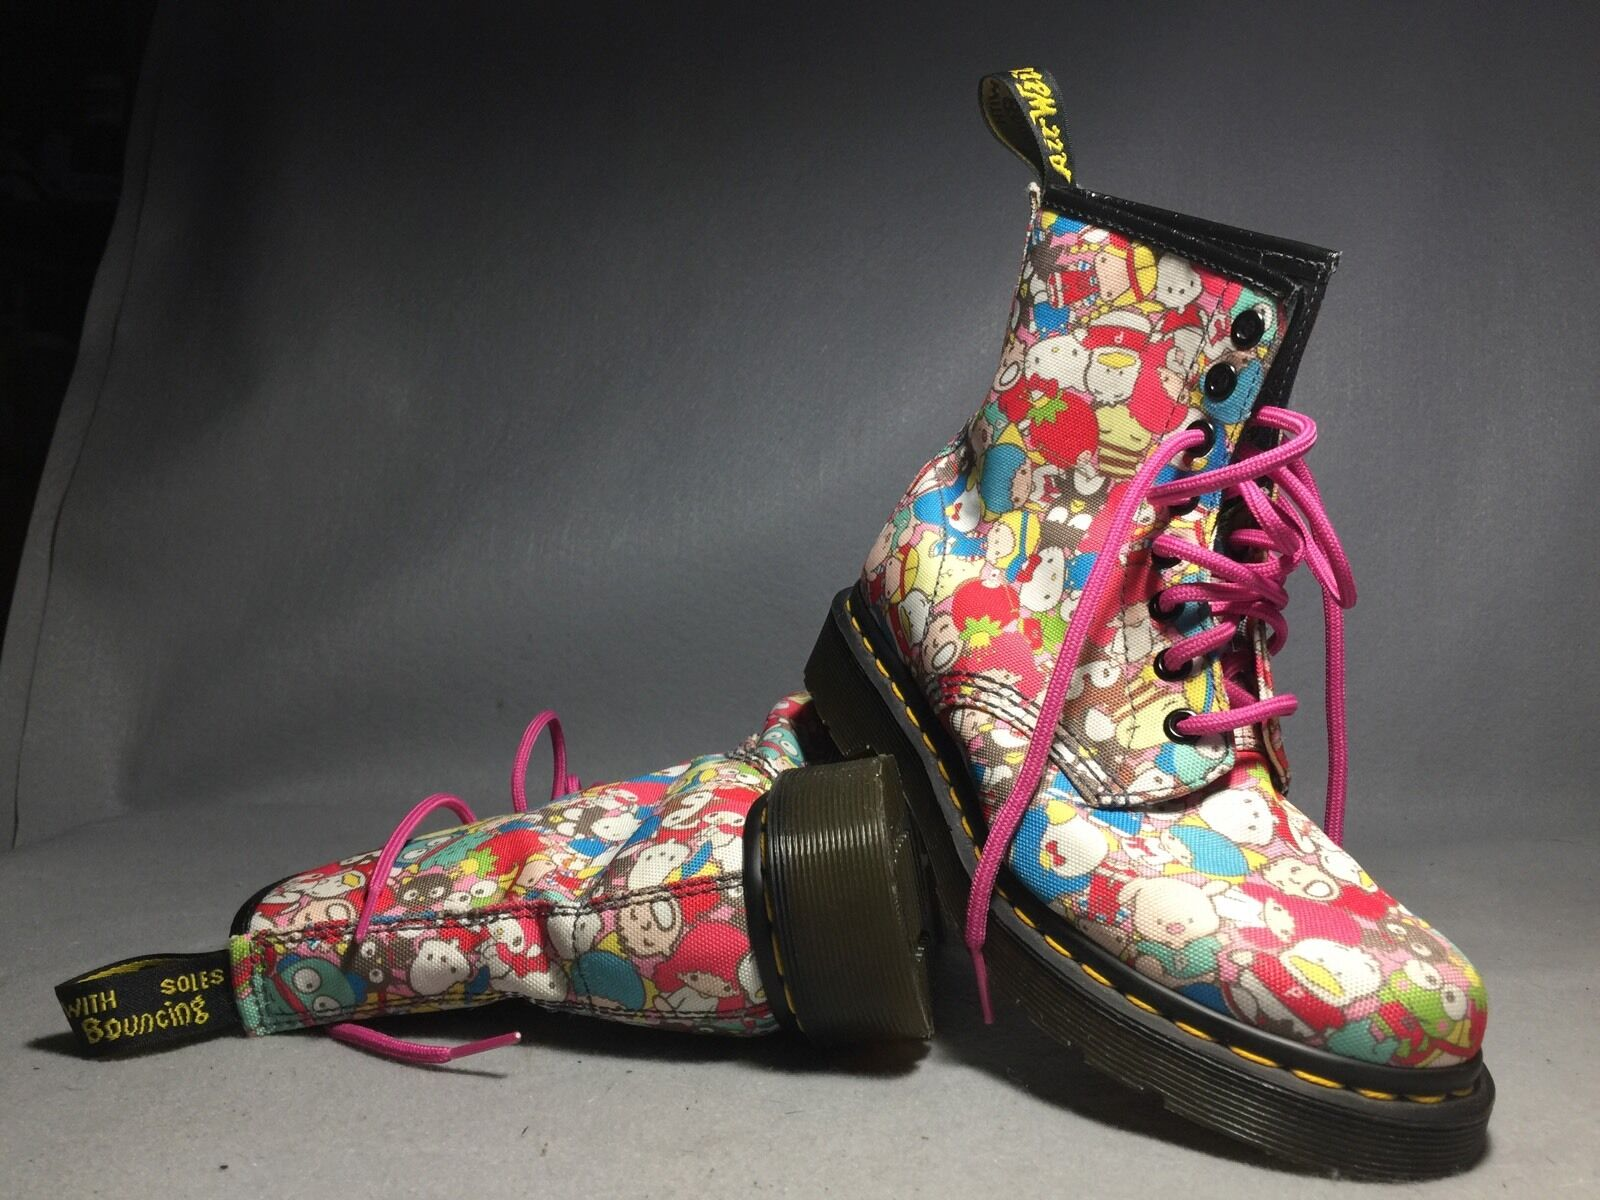 DOC DR MARTENS SANRIO HELLO KITTY BOOTS RARE 2010 LIMITED EDITION NEW 3US